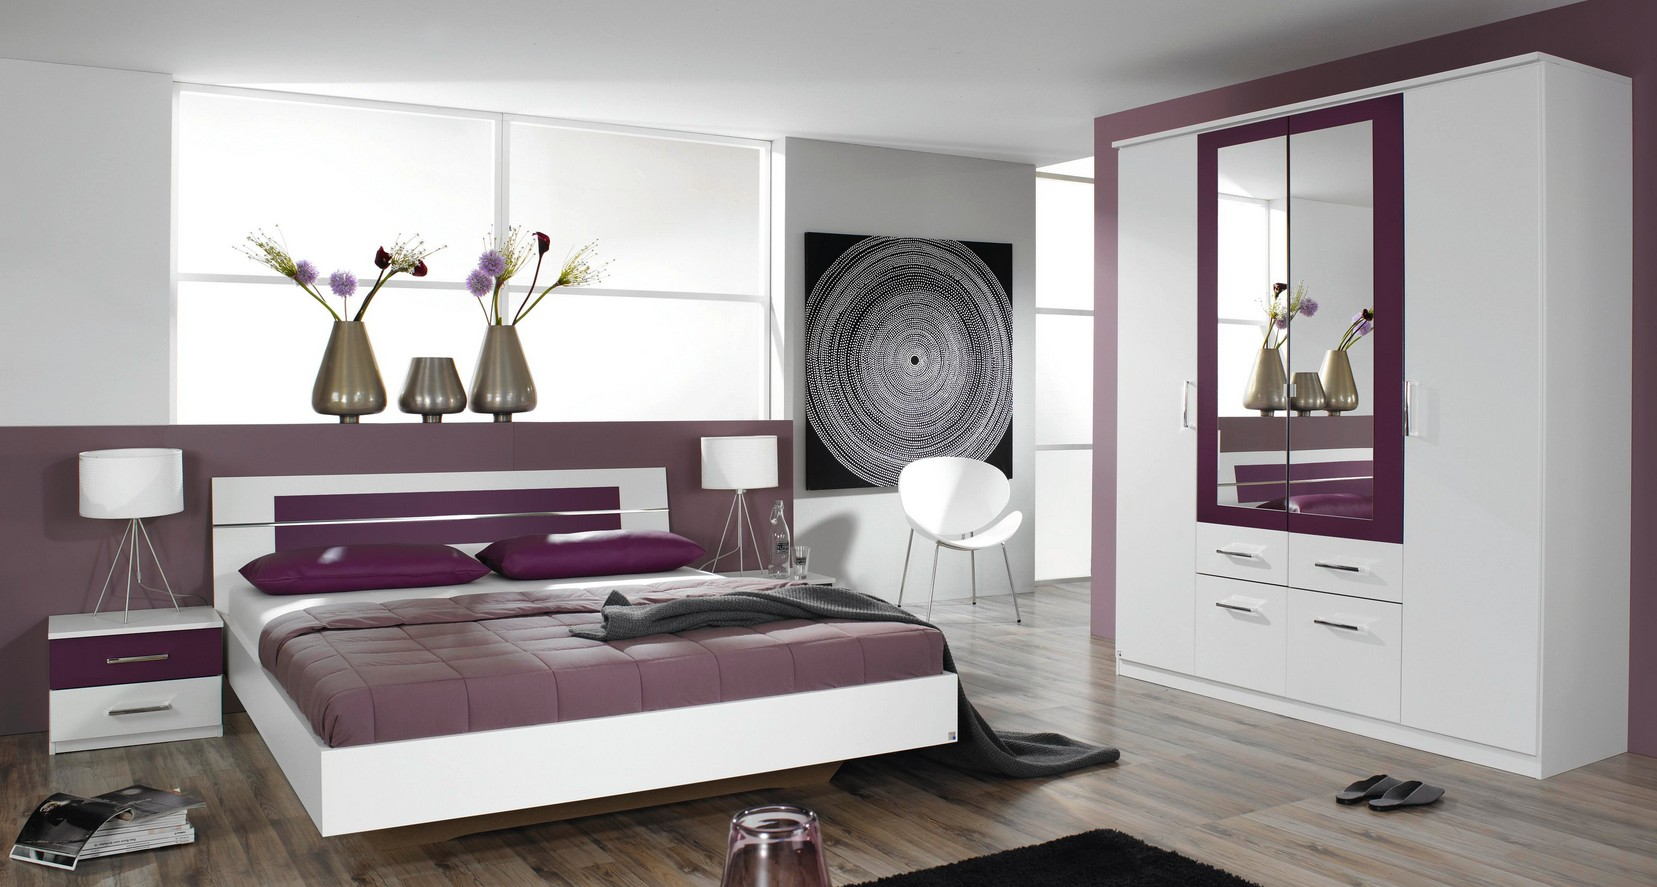 rauch packs burano schlafzimmer 4 teilig g nstig kaufen. Black Bedroom Furniture Sets. Home Design Ideas